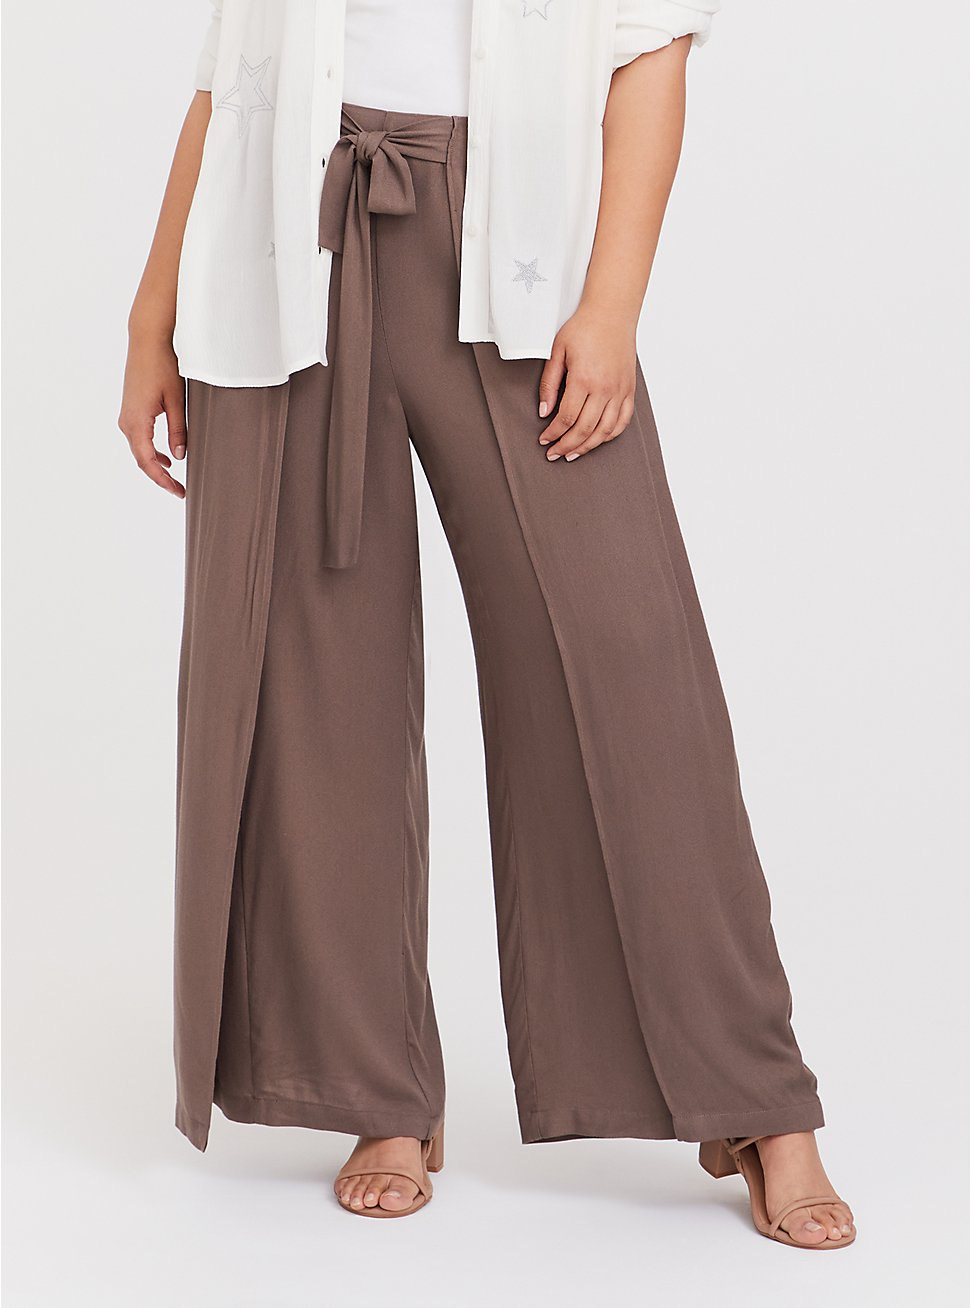 Plus Size Dark Taupe Crepe Layered Tie Front Wide Leg Pant, FALCON, hi-res